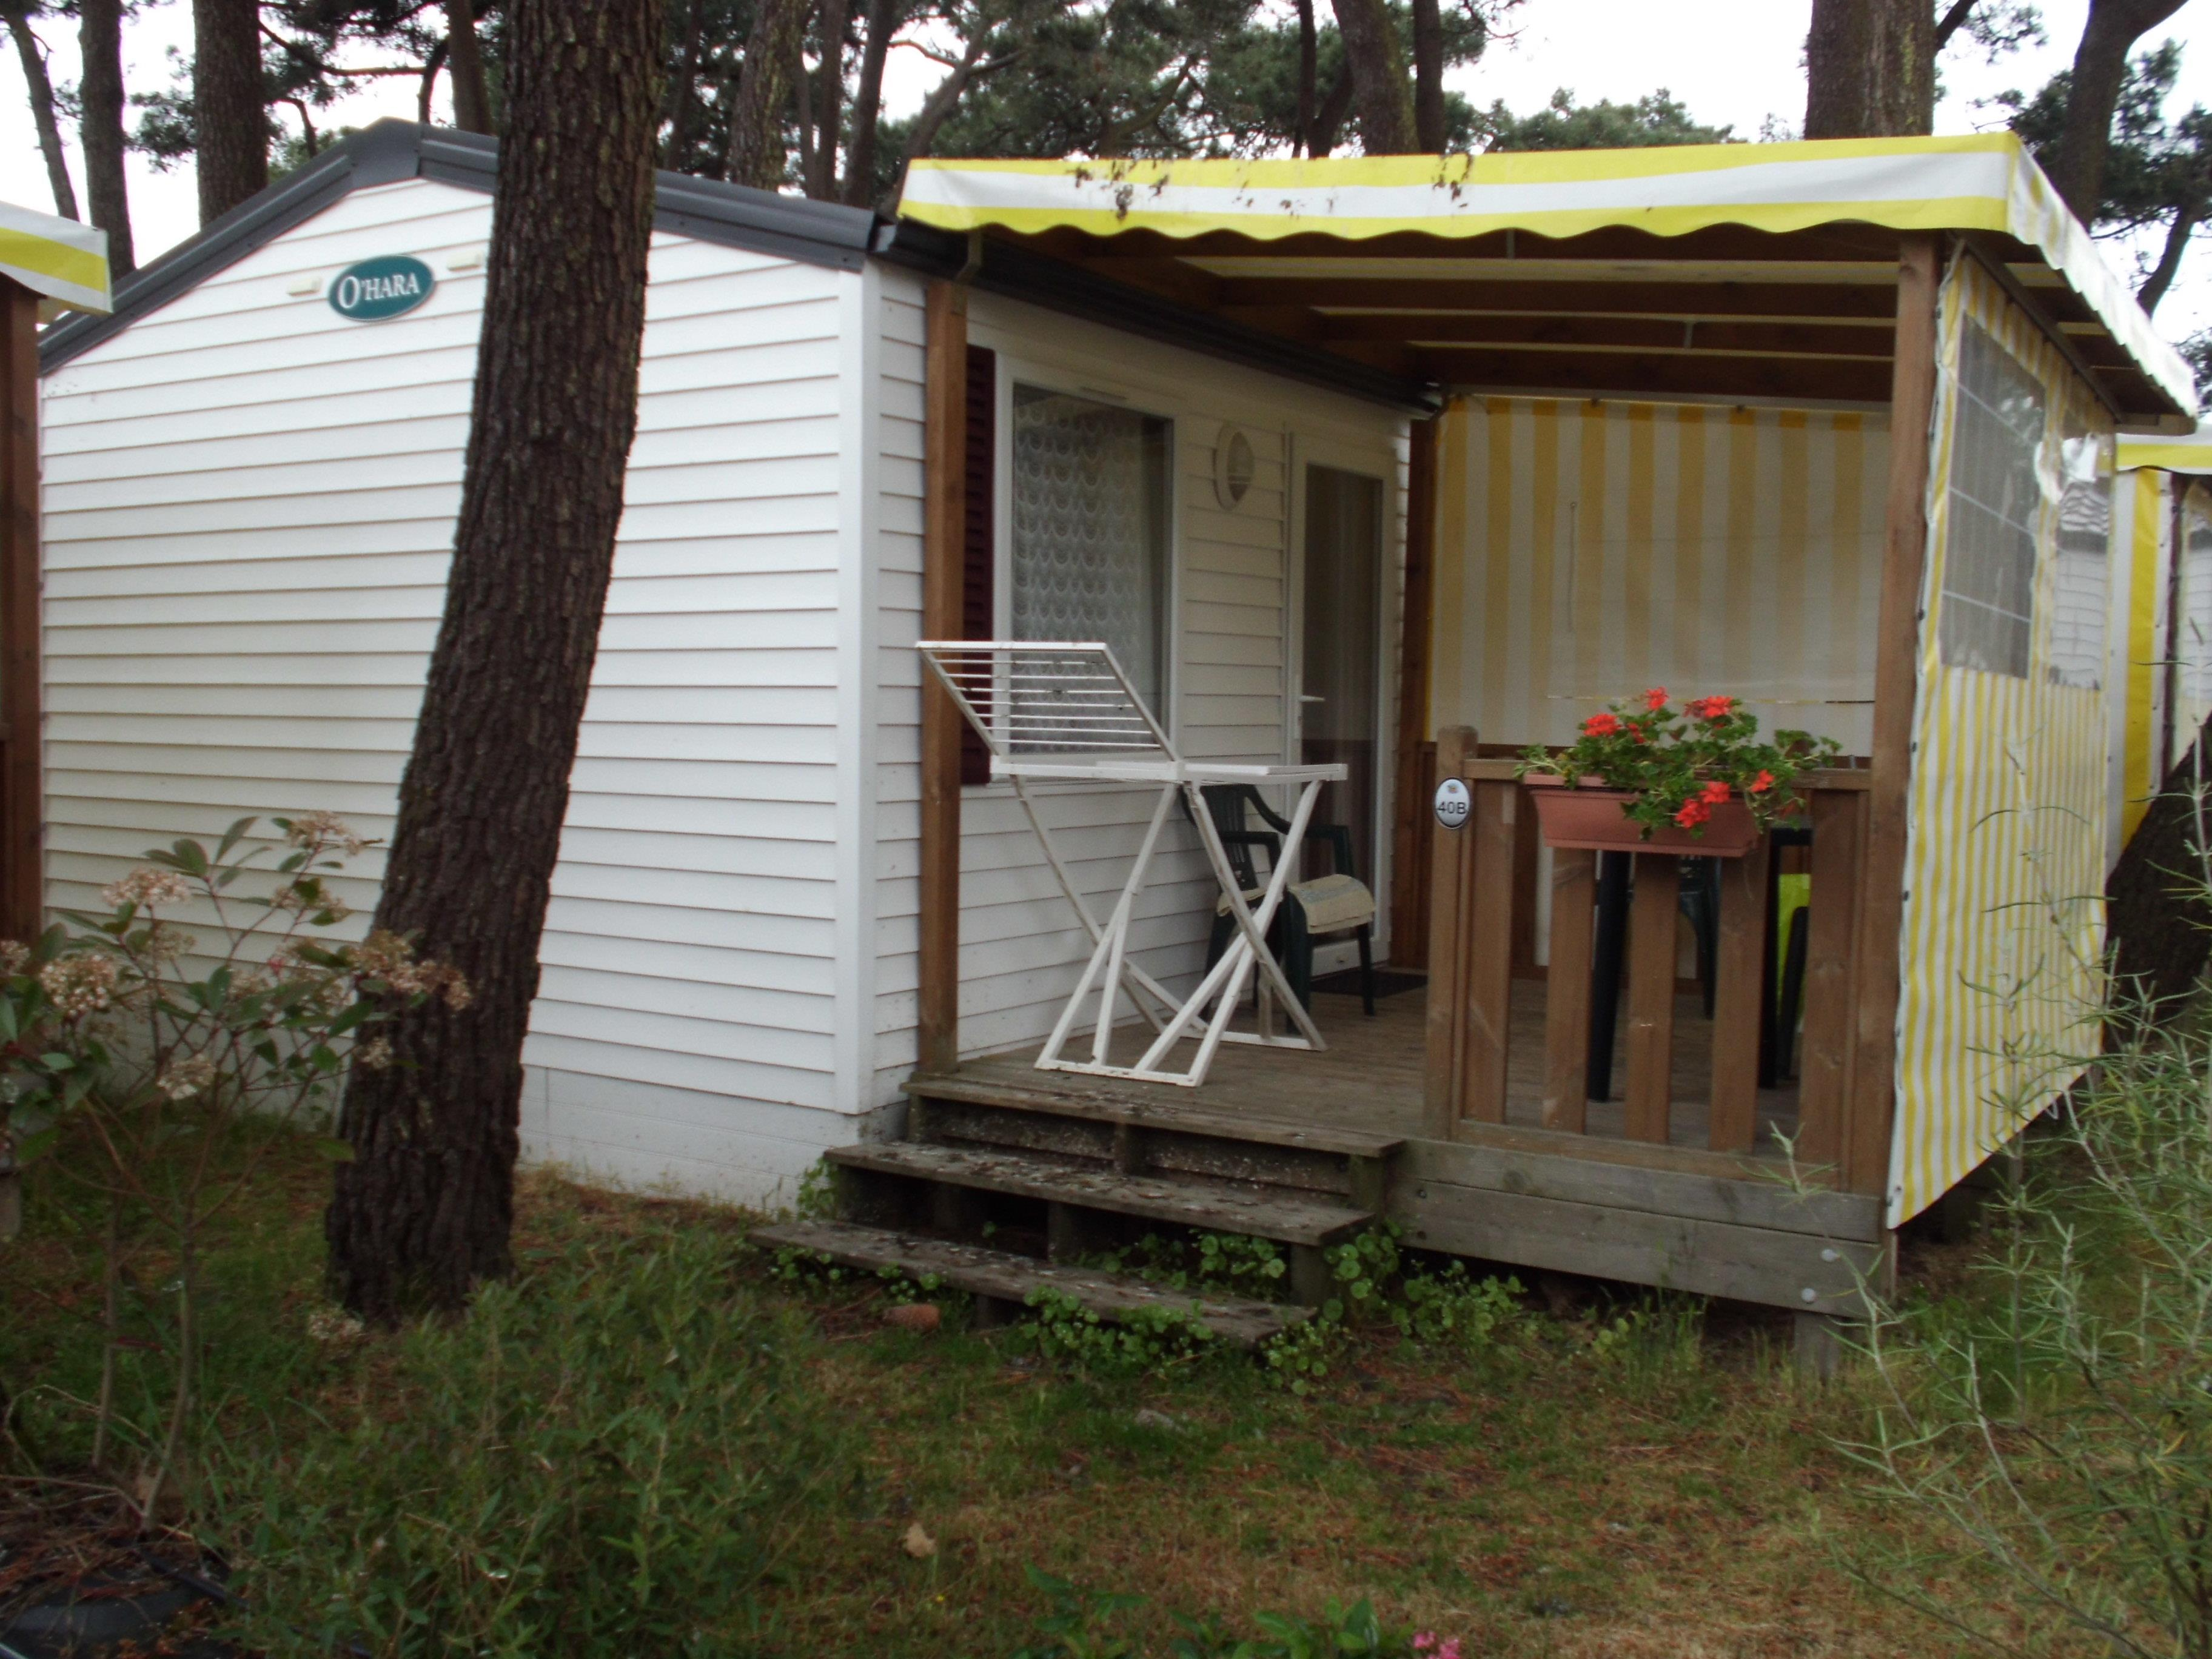 Accommodation - Mobile-Home Duo 1 Bedroom - Camping de Mindin - Camping Qualité